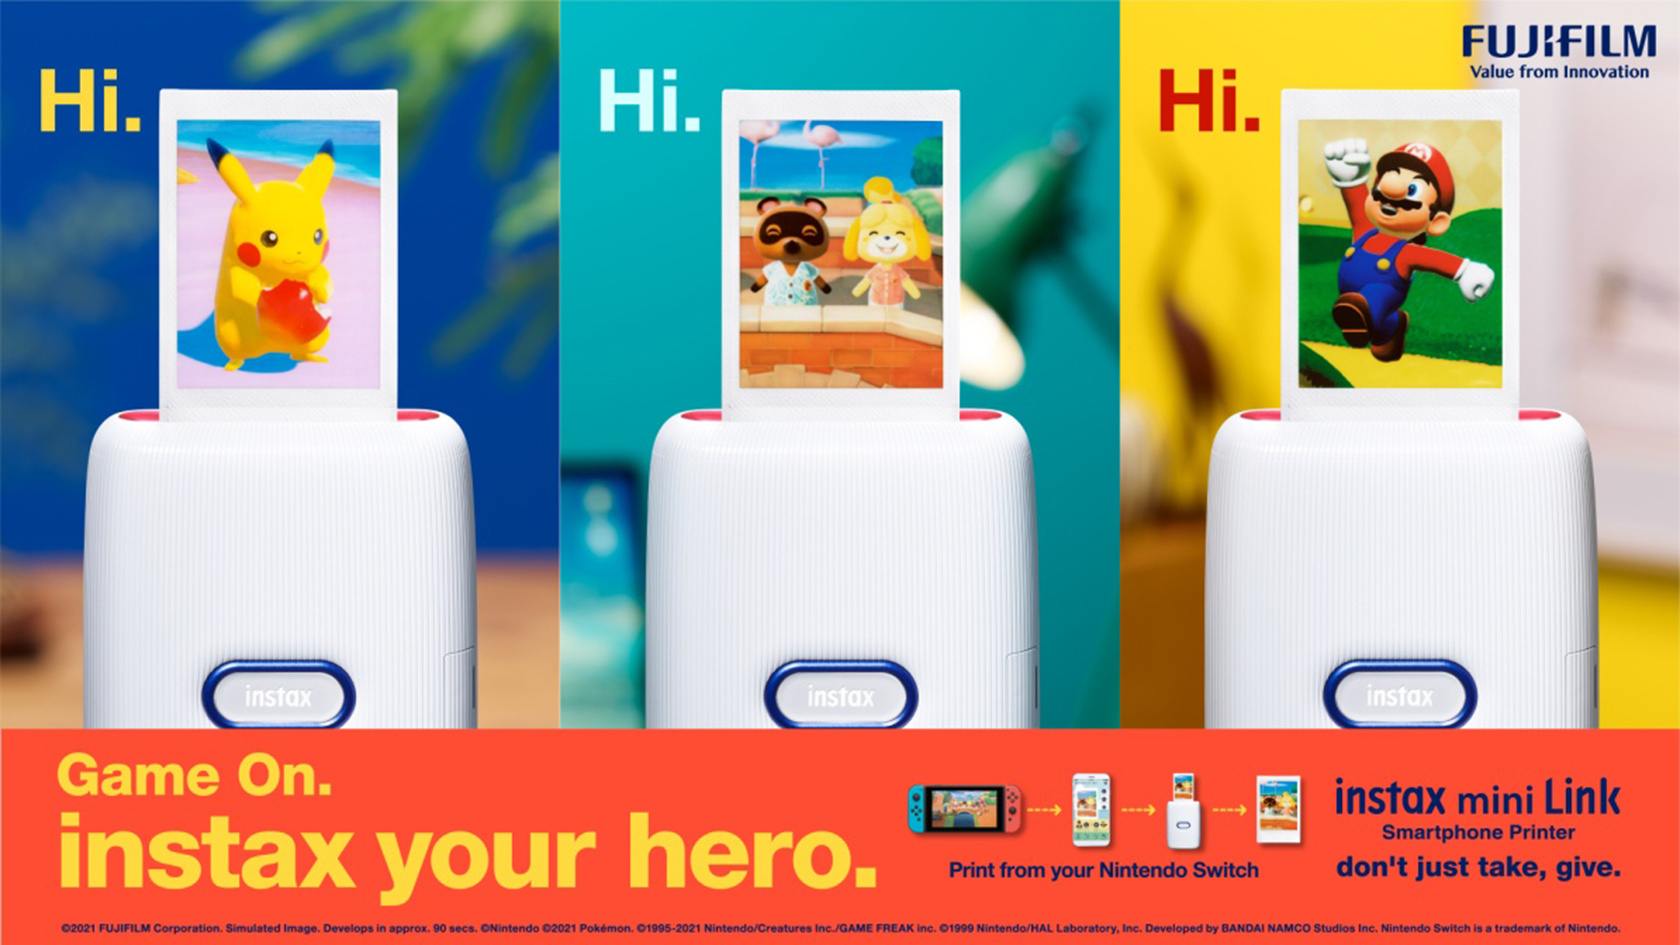 [image]Game On. instax your hero.